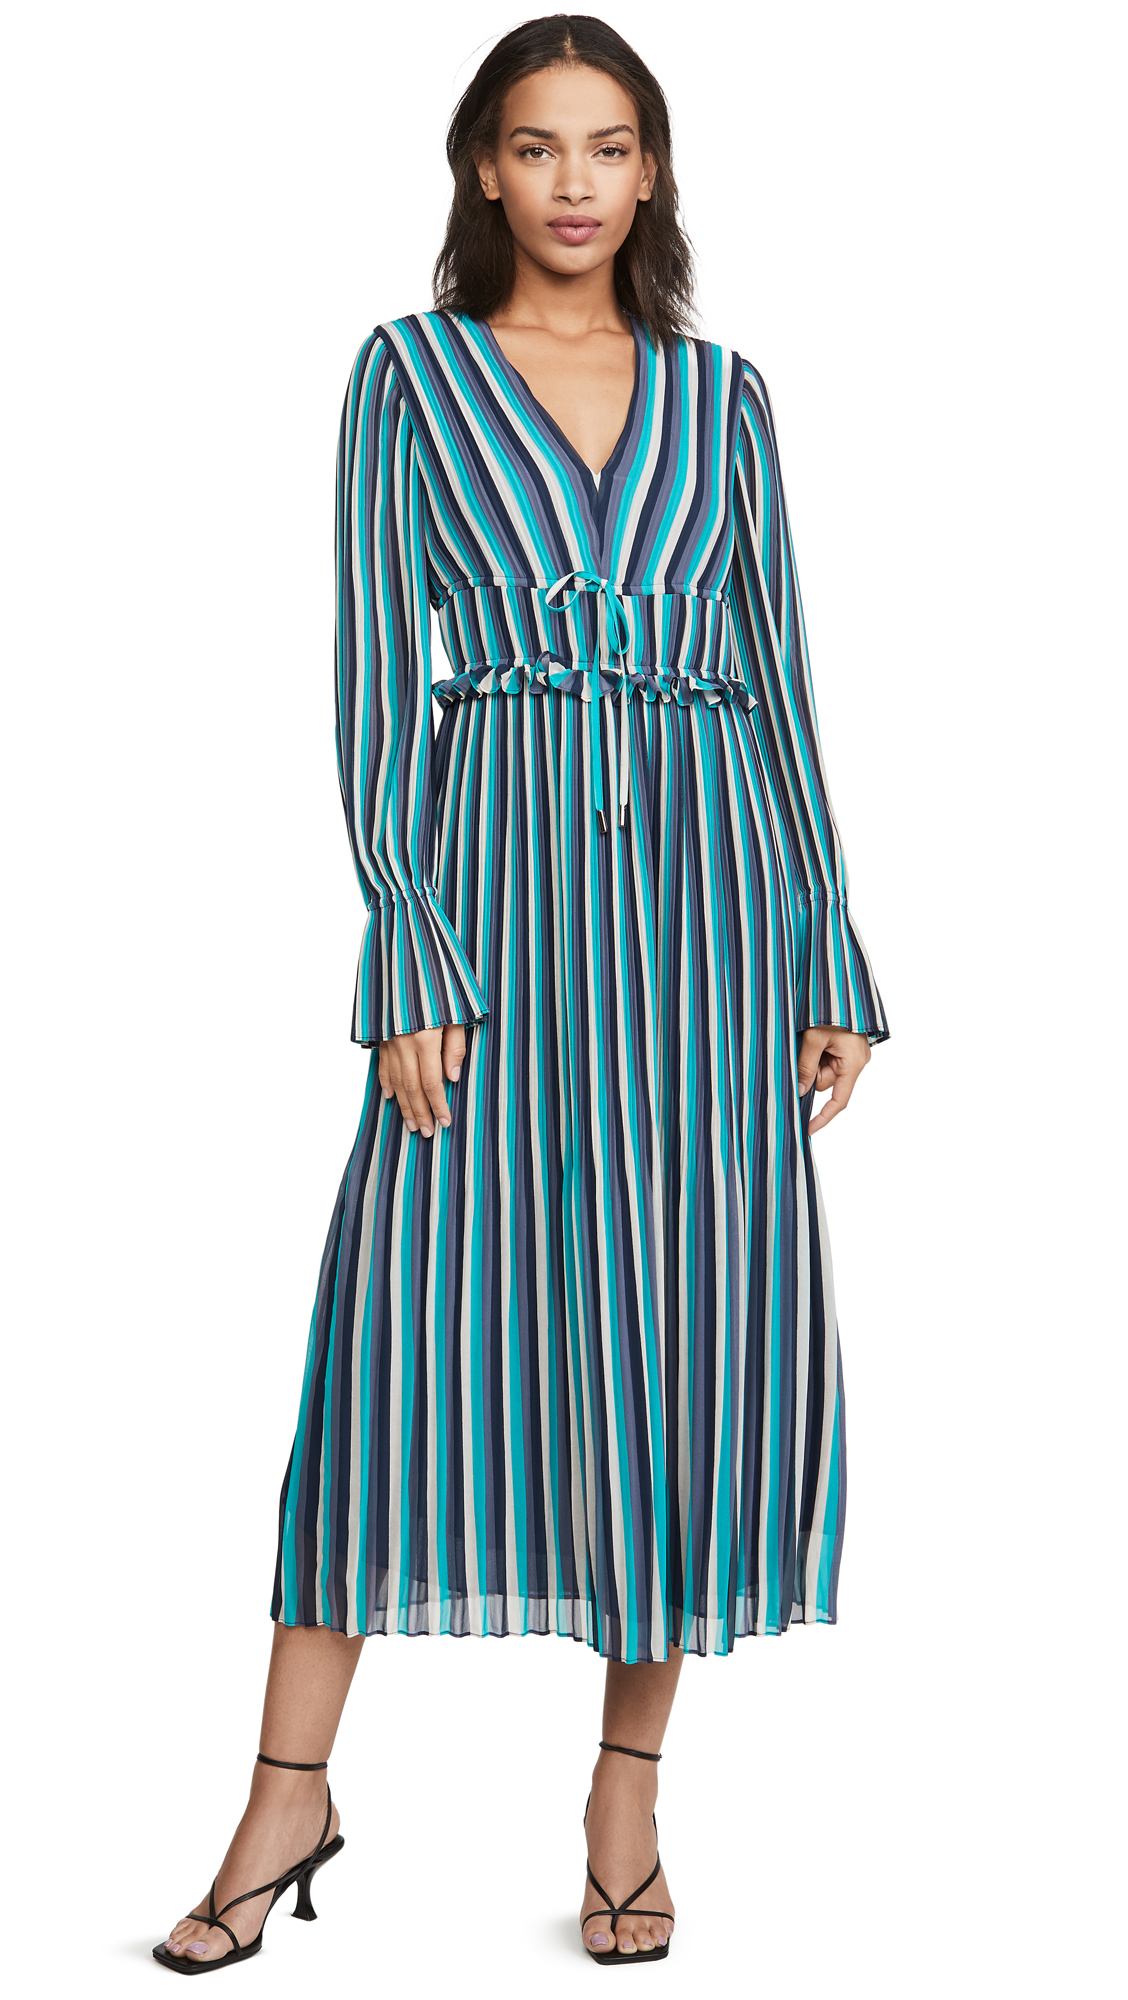 Ramy Brook Printed Hazel Dress - 50% Off Sale